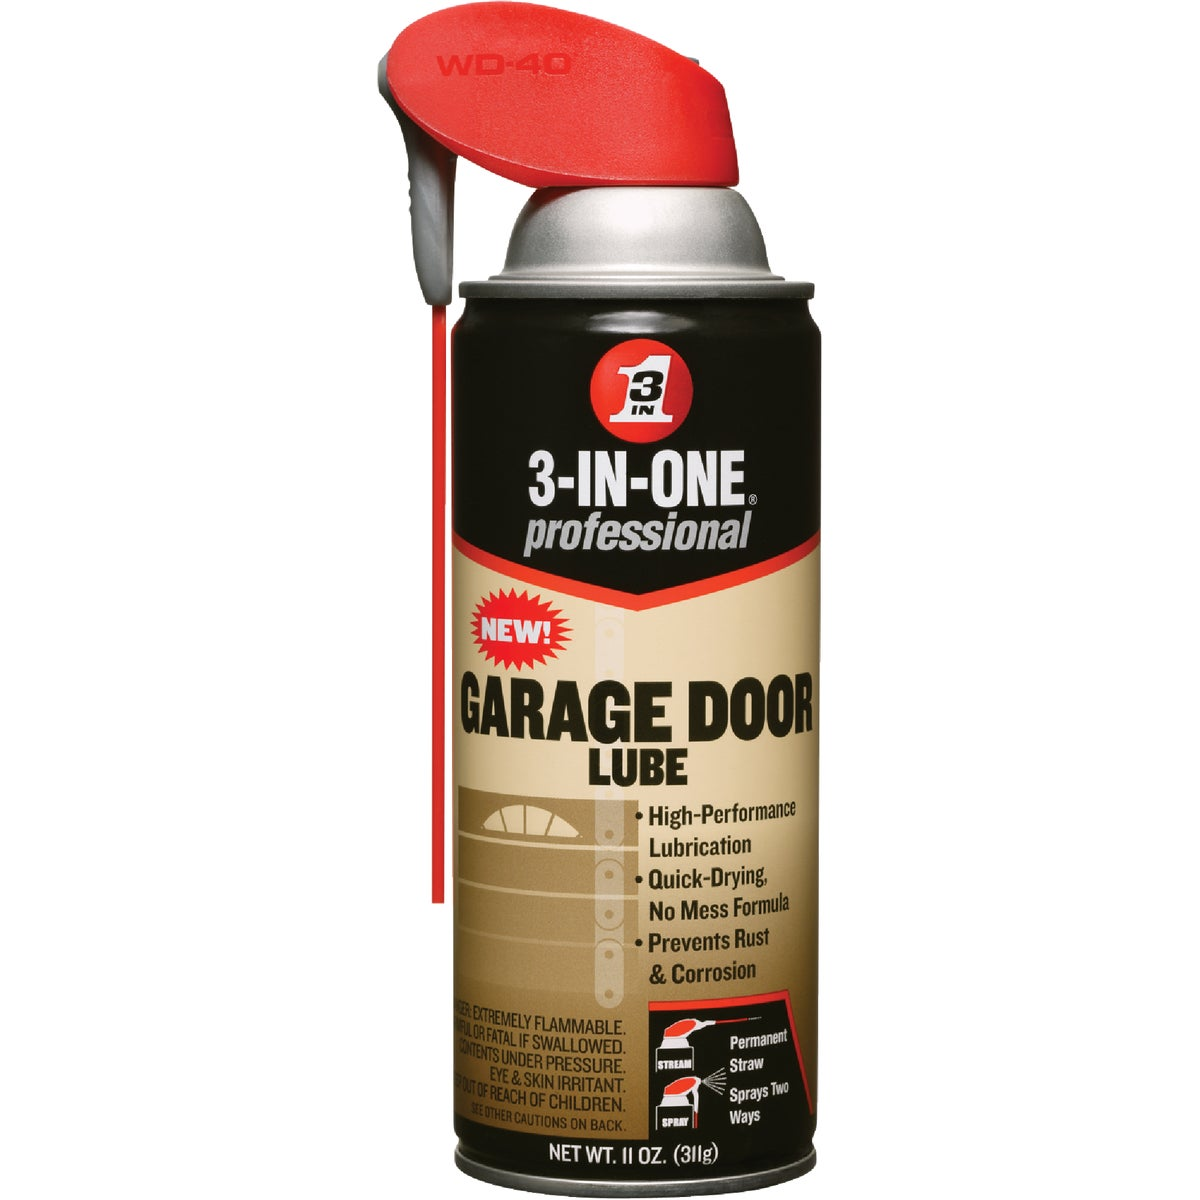 11OZ GARAGE DOOR LUBE - 10058 by W D 40 Company